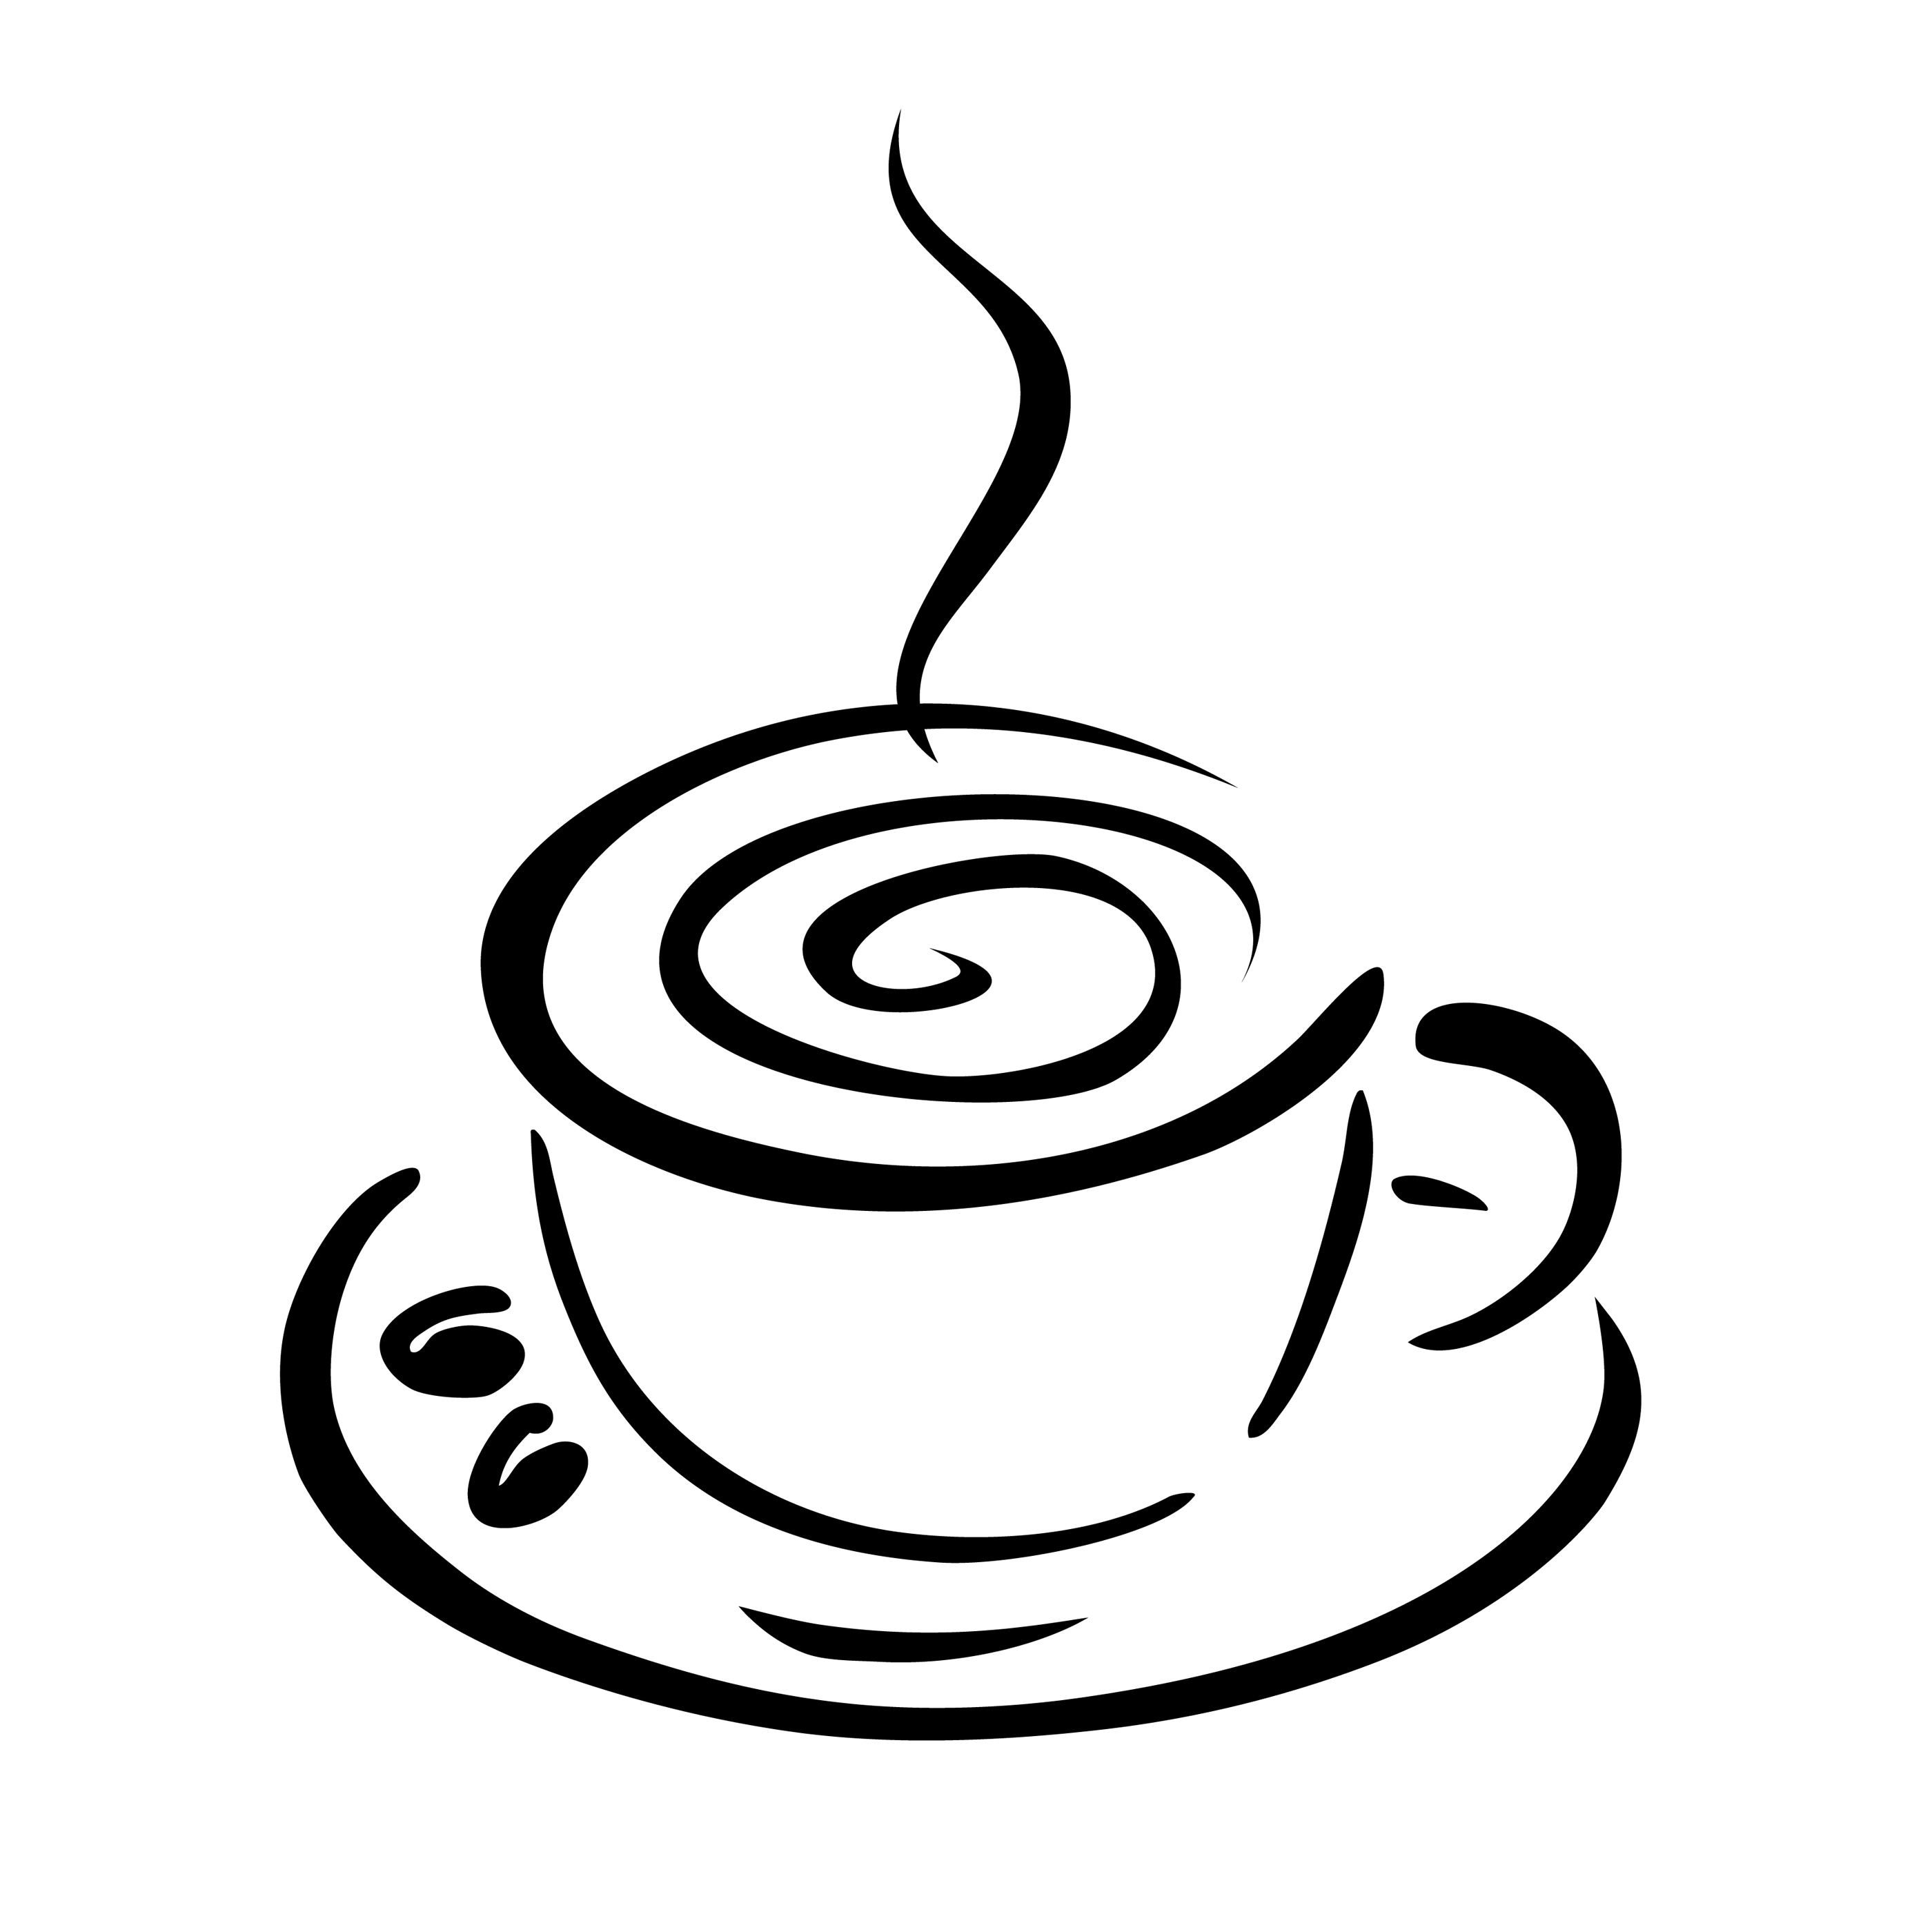 Coffee Cup Clip Art Black White.